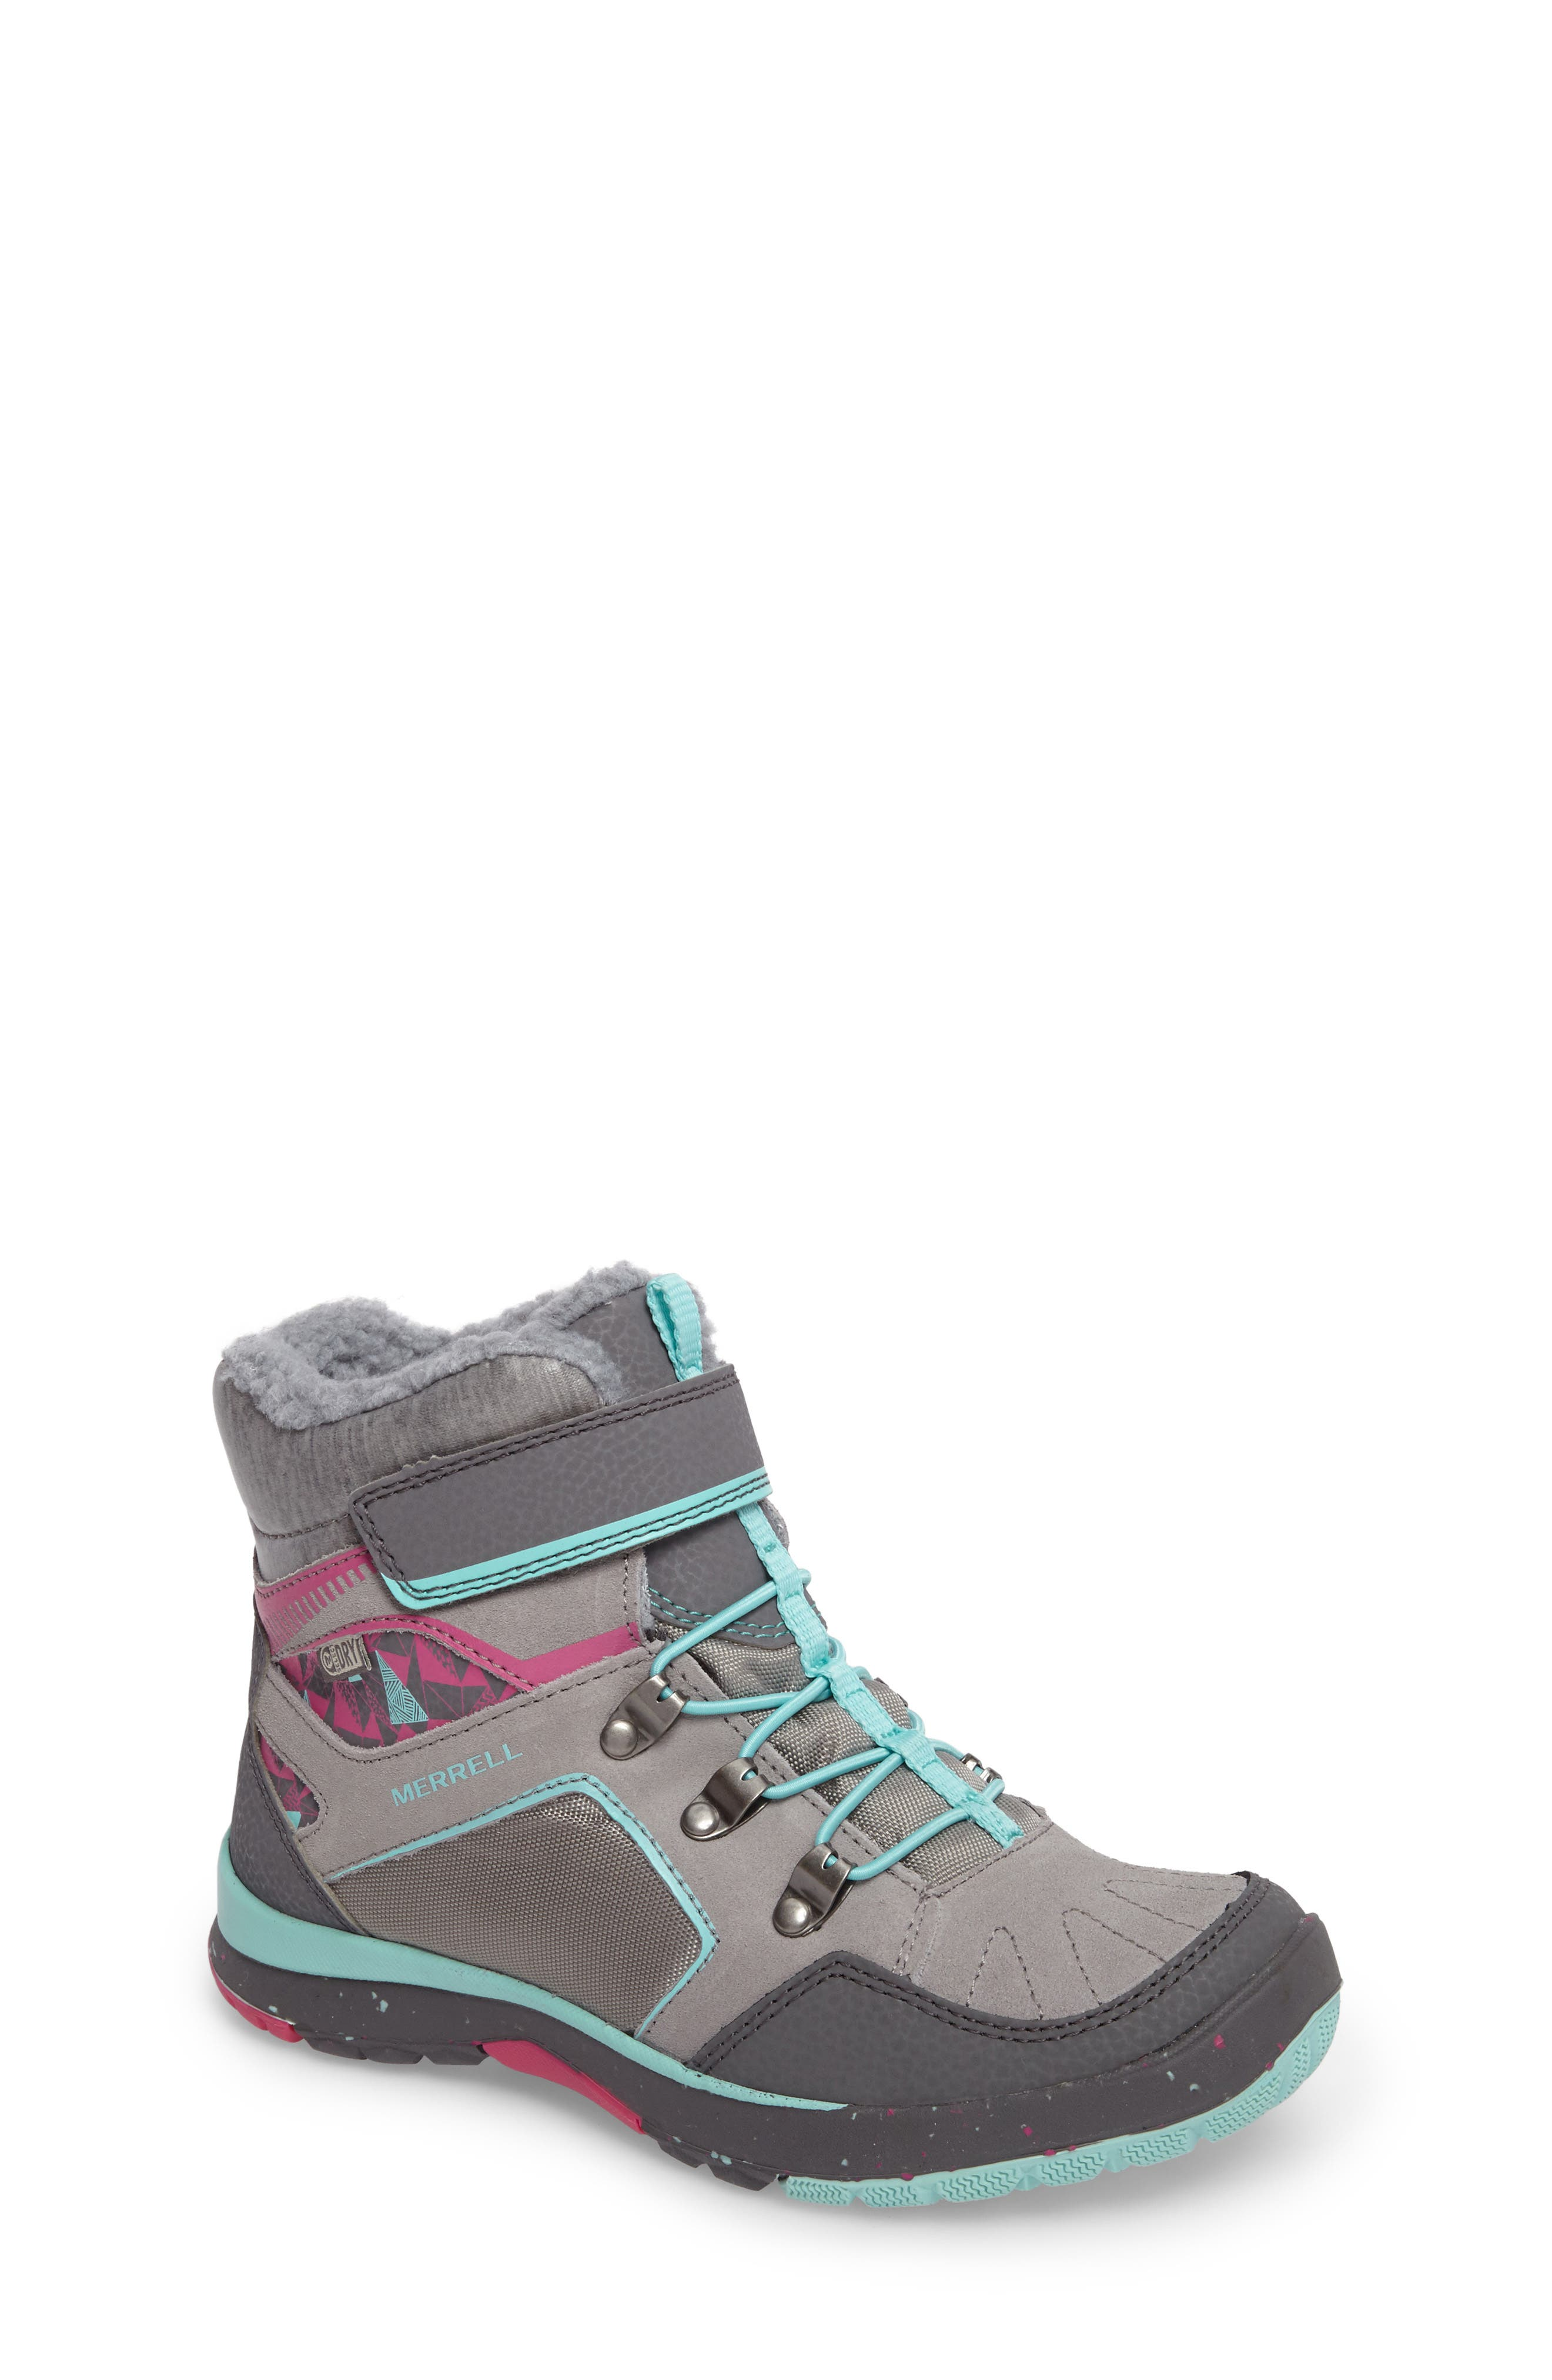 Alternate Image 1 Selected - Merrell Moab FST Polar Mid Waterproof Insulated Sneaker Boot (Toddler, Little Kid & Big Kid)